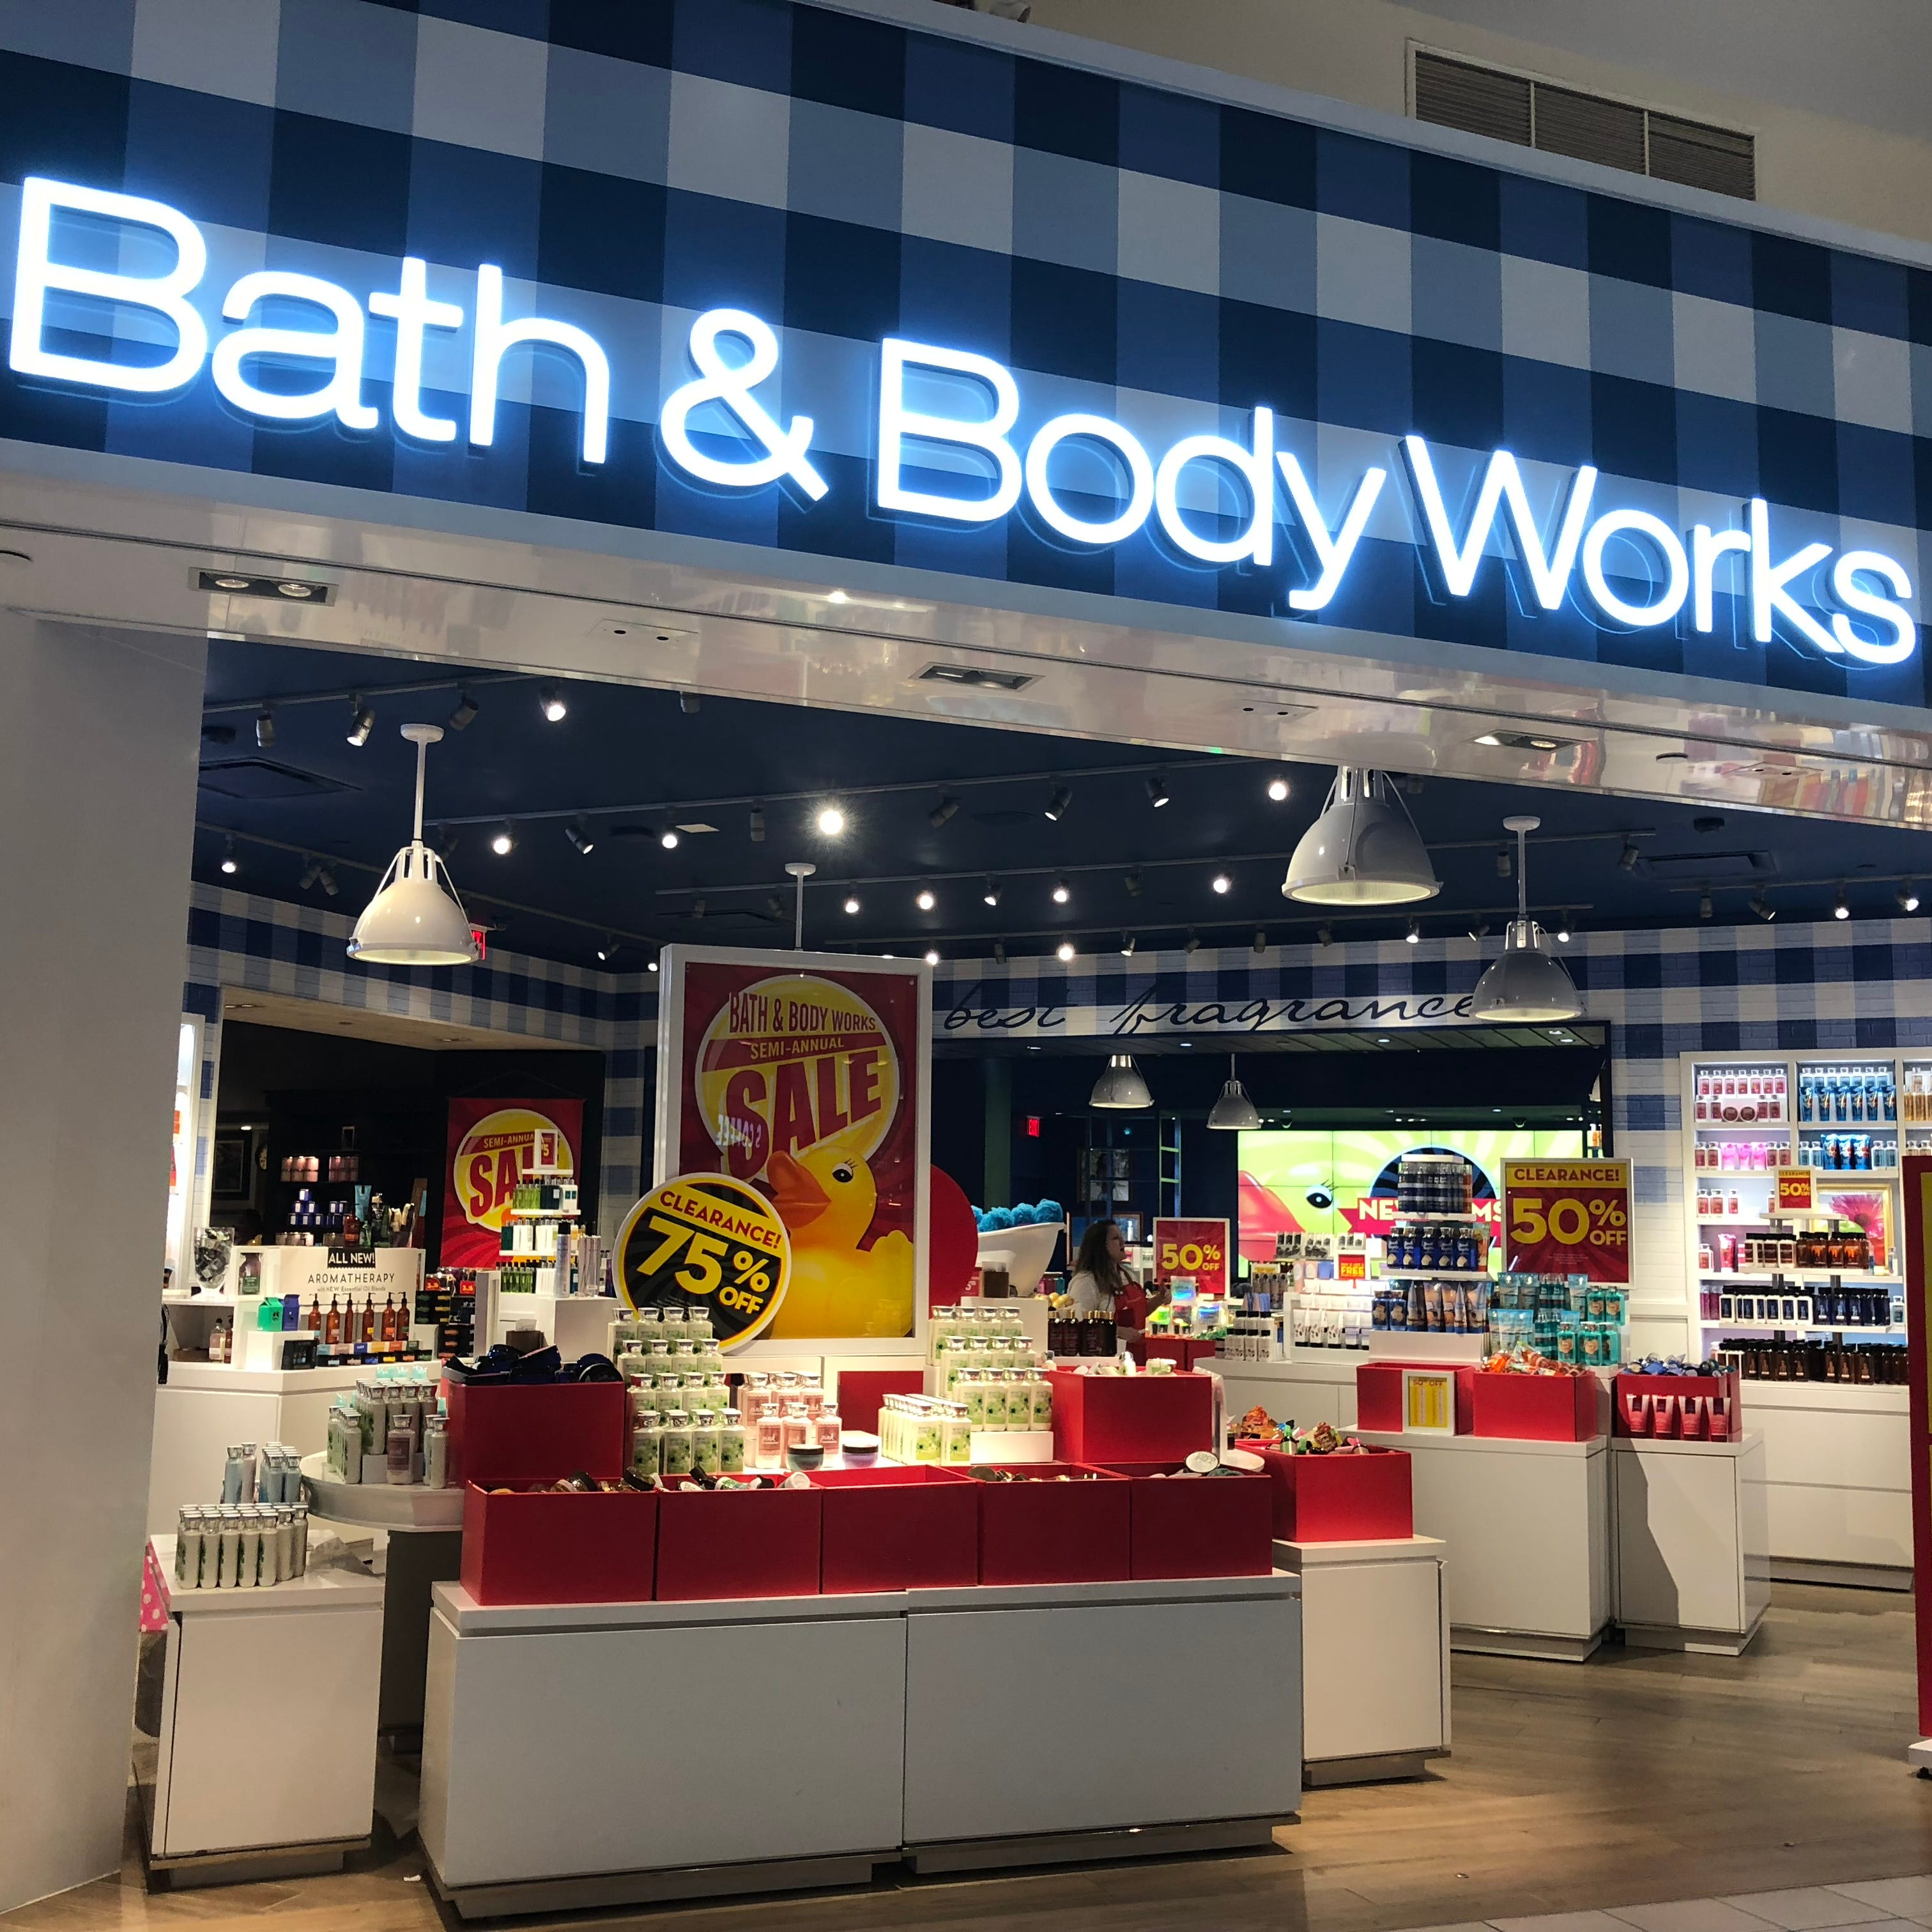 Bath & Body Works is opening and closing stores in 2019.